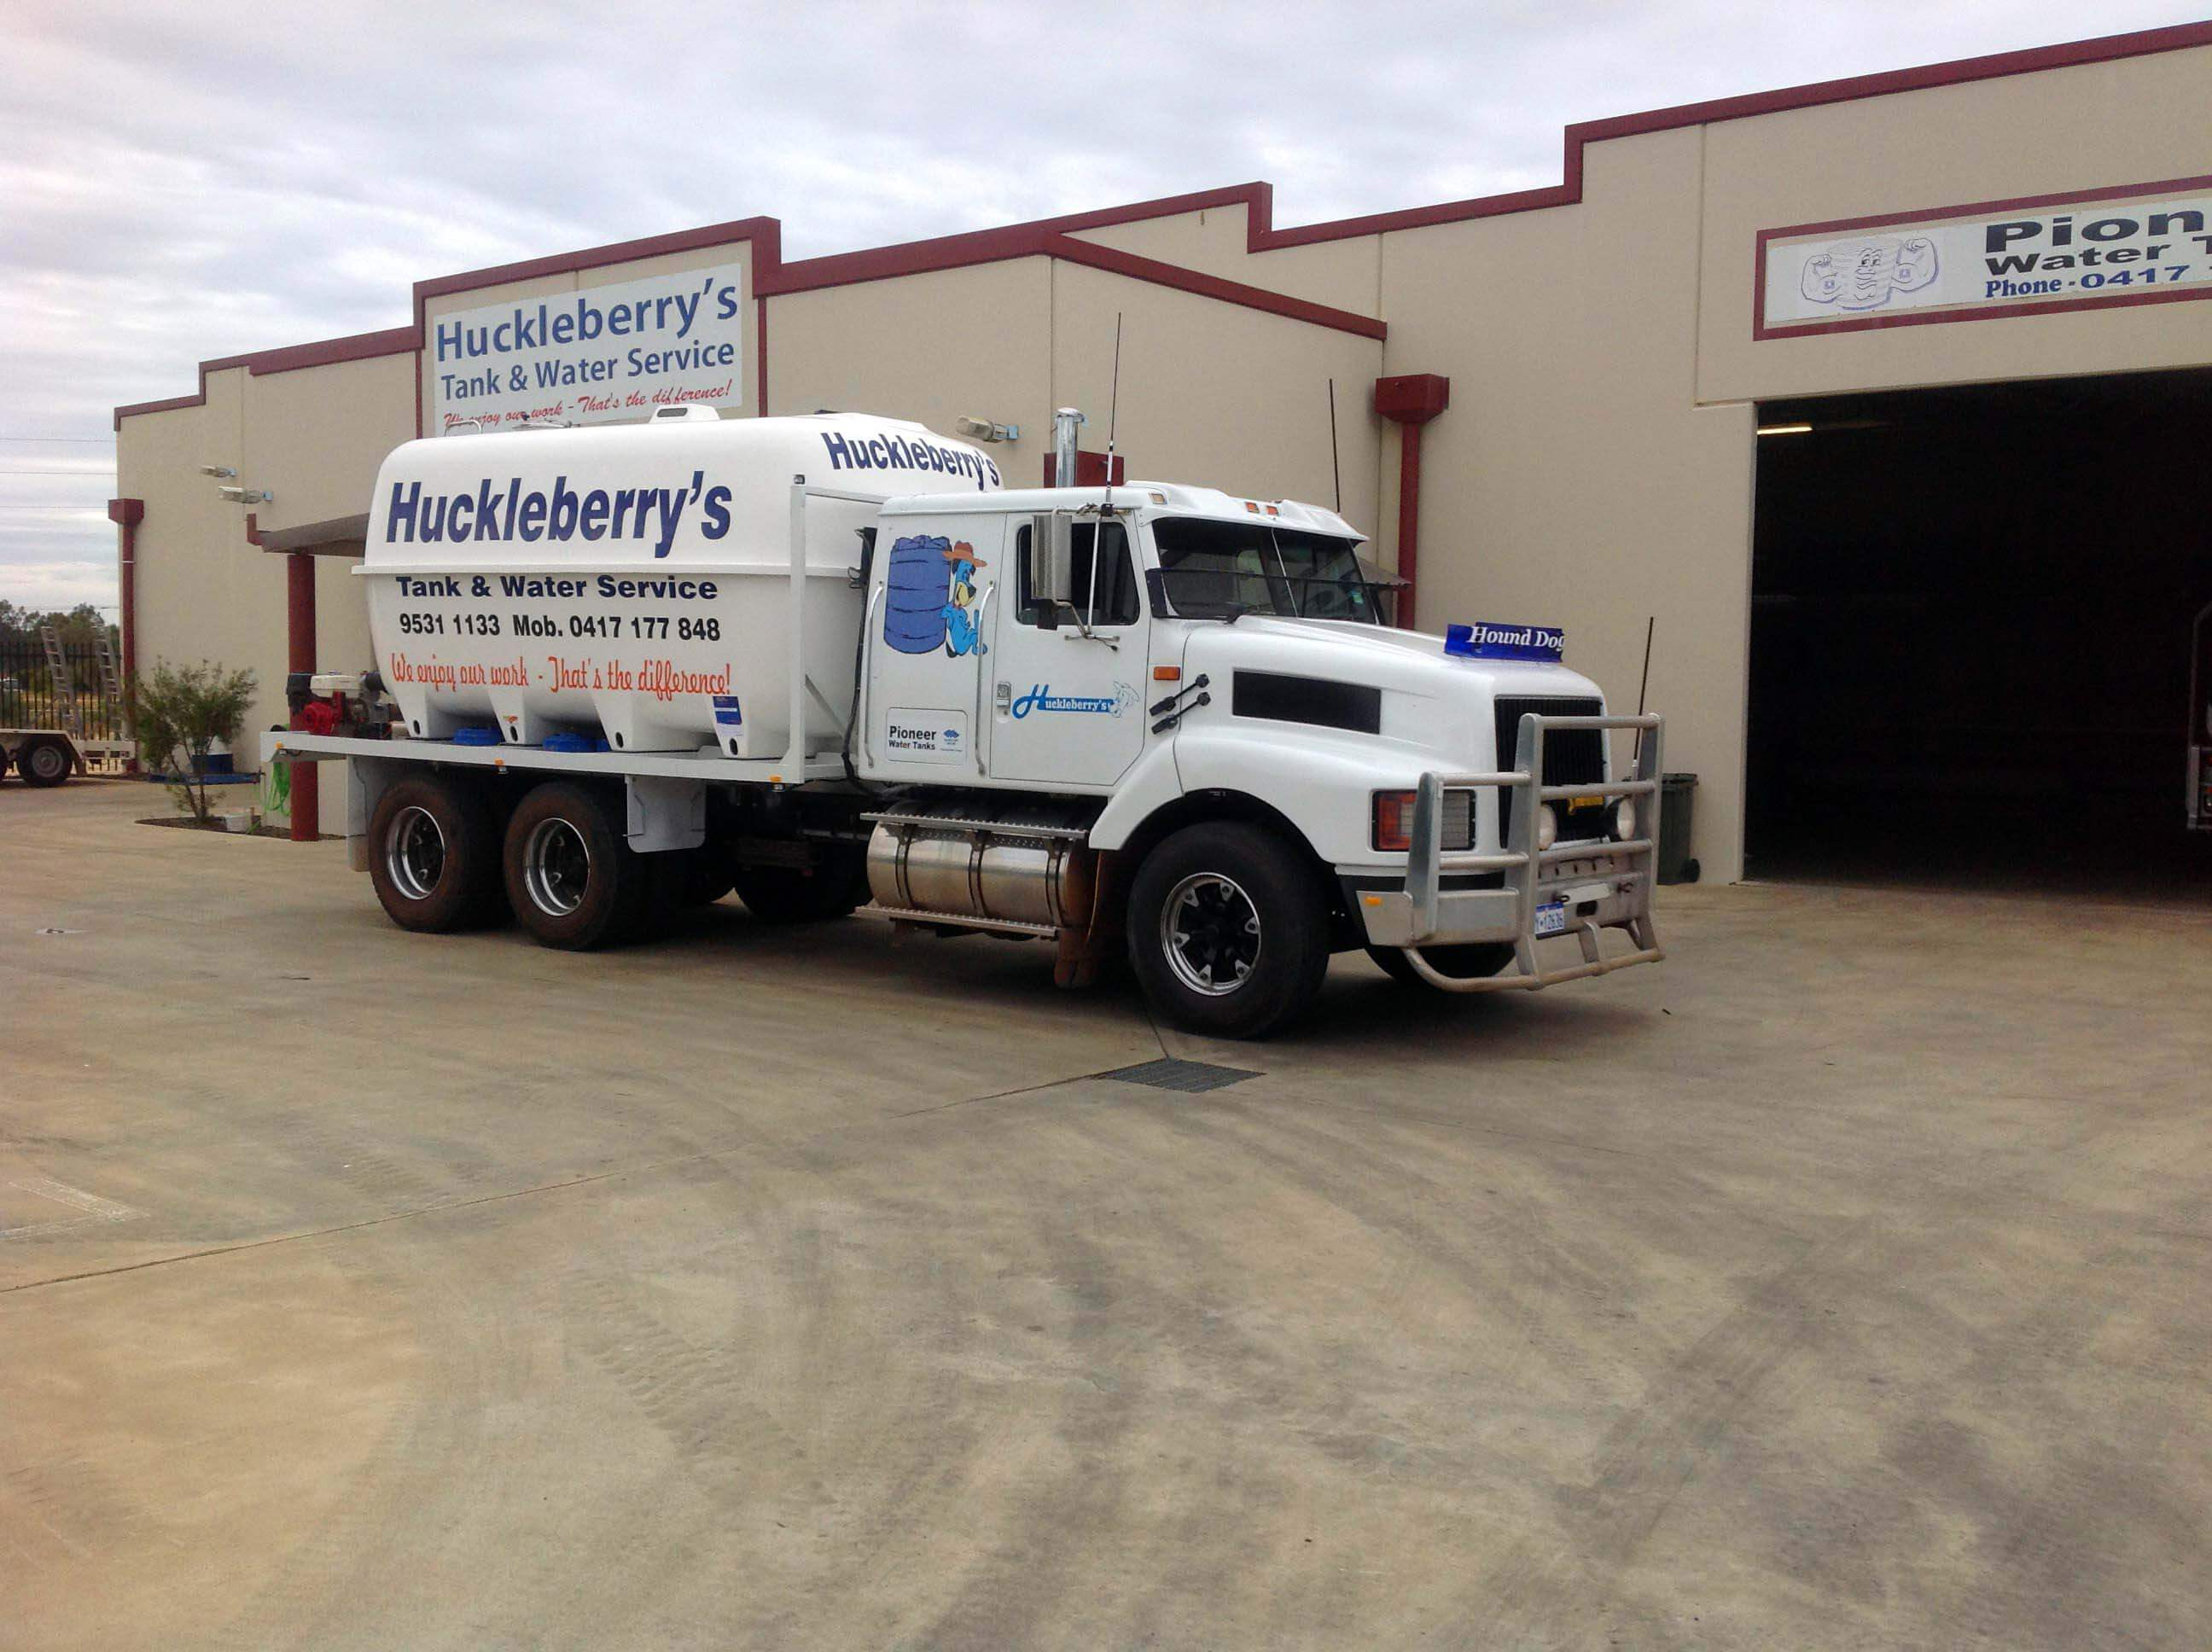 Huckleberry Tanks And Sheds - Huckleberrys Truck